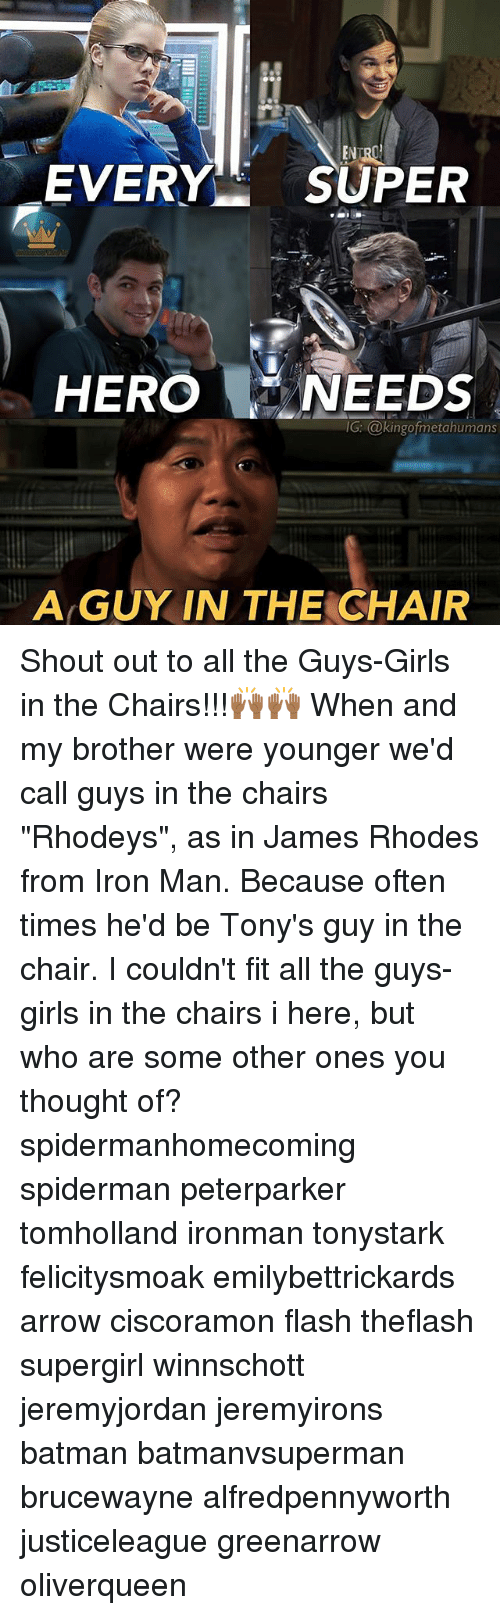 """Batman, Girls, and Iron Man: EVERY SUPER  HERO NEEDS  IG: @kingofmetahumans  G: @kingofmetahumans  A GUY IN THE CHAIR Shout out to all the Guys-Girls in the Chairs!!!🙌🏾🙌🏾 When and my brother were younger we'd call guys in the chairs """"Rhodeys"""", as in James Rhodes from Iron Man. Because often times he'd be Tony's guy in the chair. I couldn't fit all the guys-girls in the chairs i here, but who are some other ones you thought of? spidermanhomecoming spiderman peterparker tomholland ironman tonystark felicitysmoak emilybettrickards arrow ciscoramon flash theflash supergirl winnschott jeremyjordan jeremyirons batman batmanvsuperman brucewayne alfredpennyworth justiceleague greenarrow oliverqueen"""